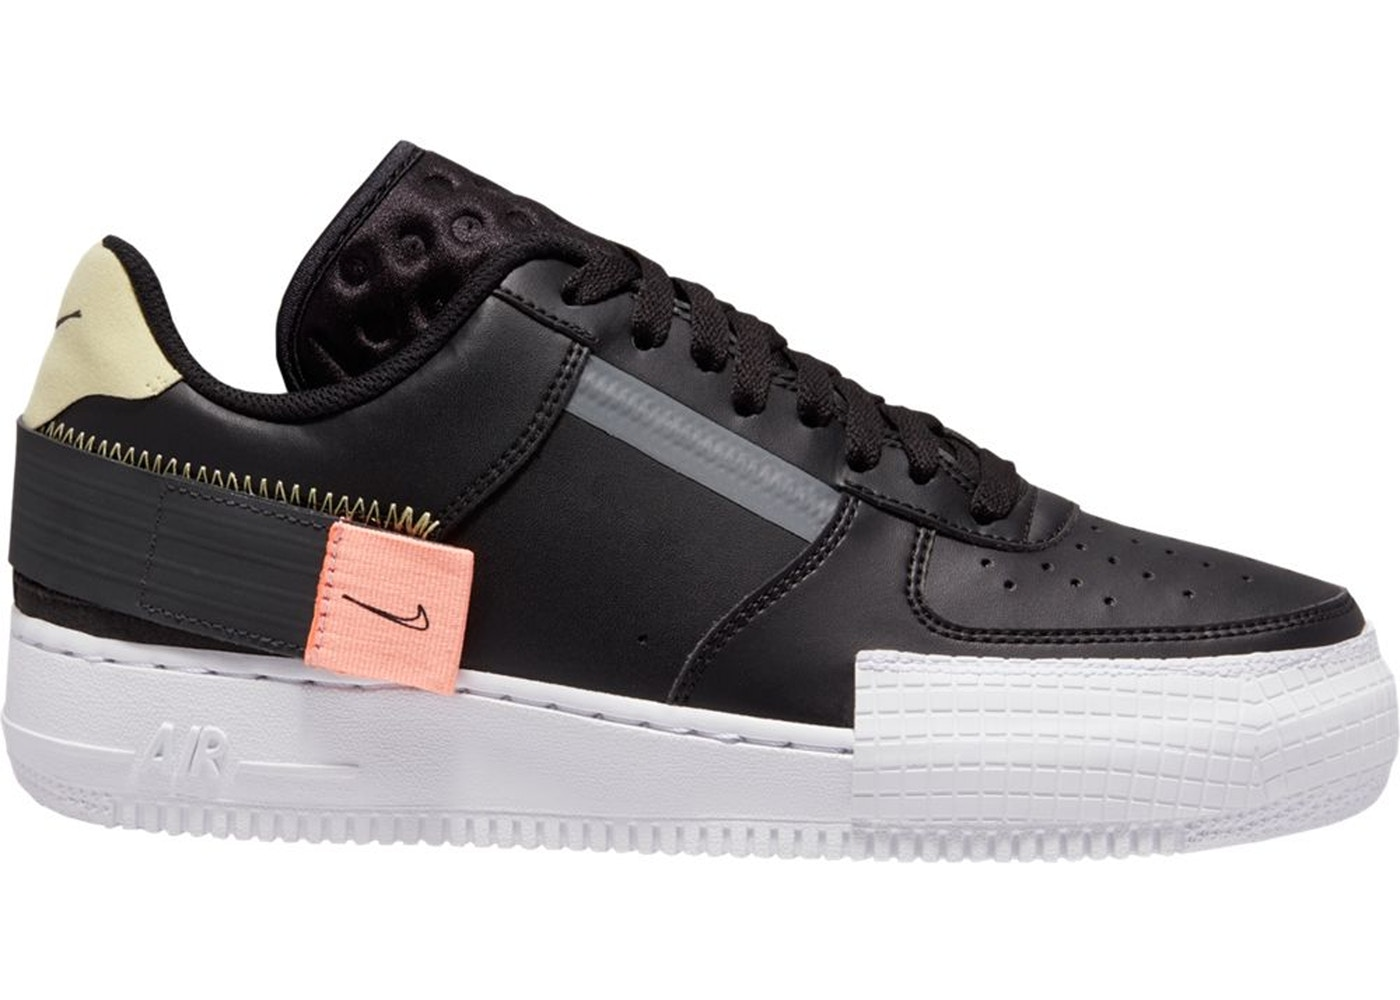 412979fda3 Buy Nike Air Force 1 Shoes & Deadstock Sneakers